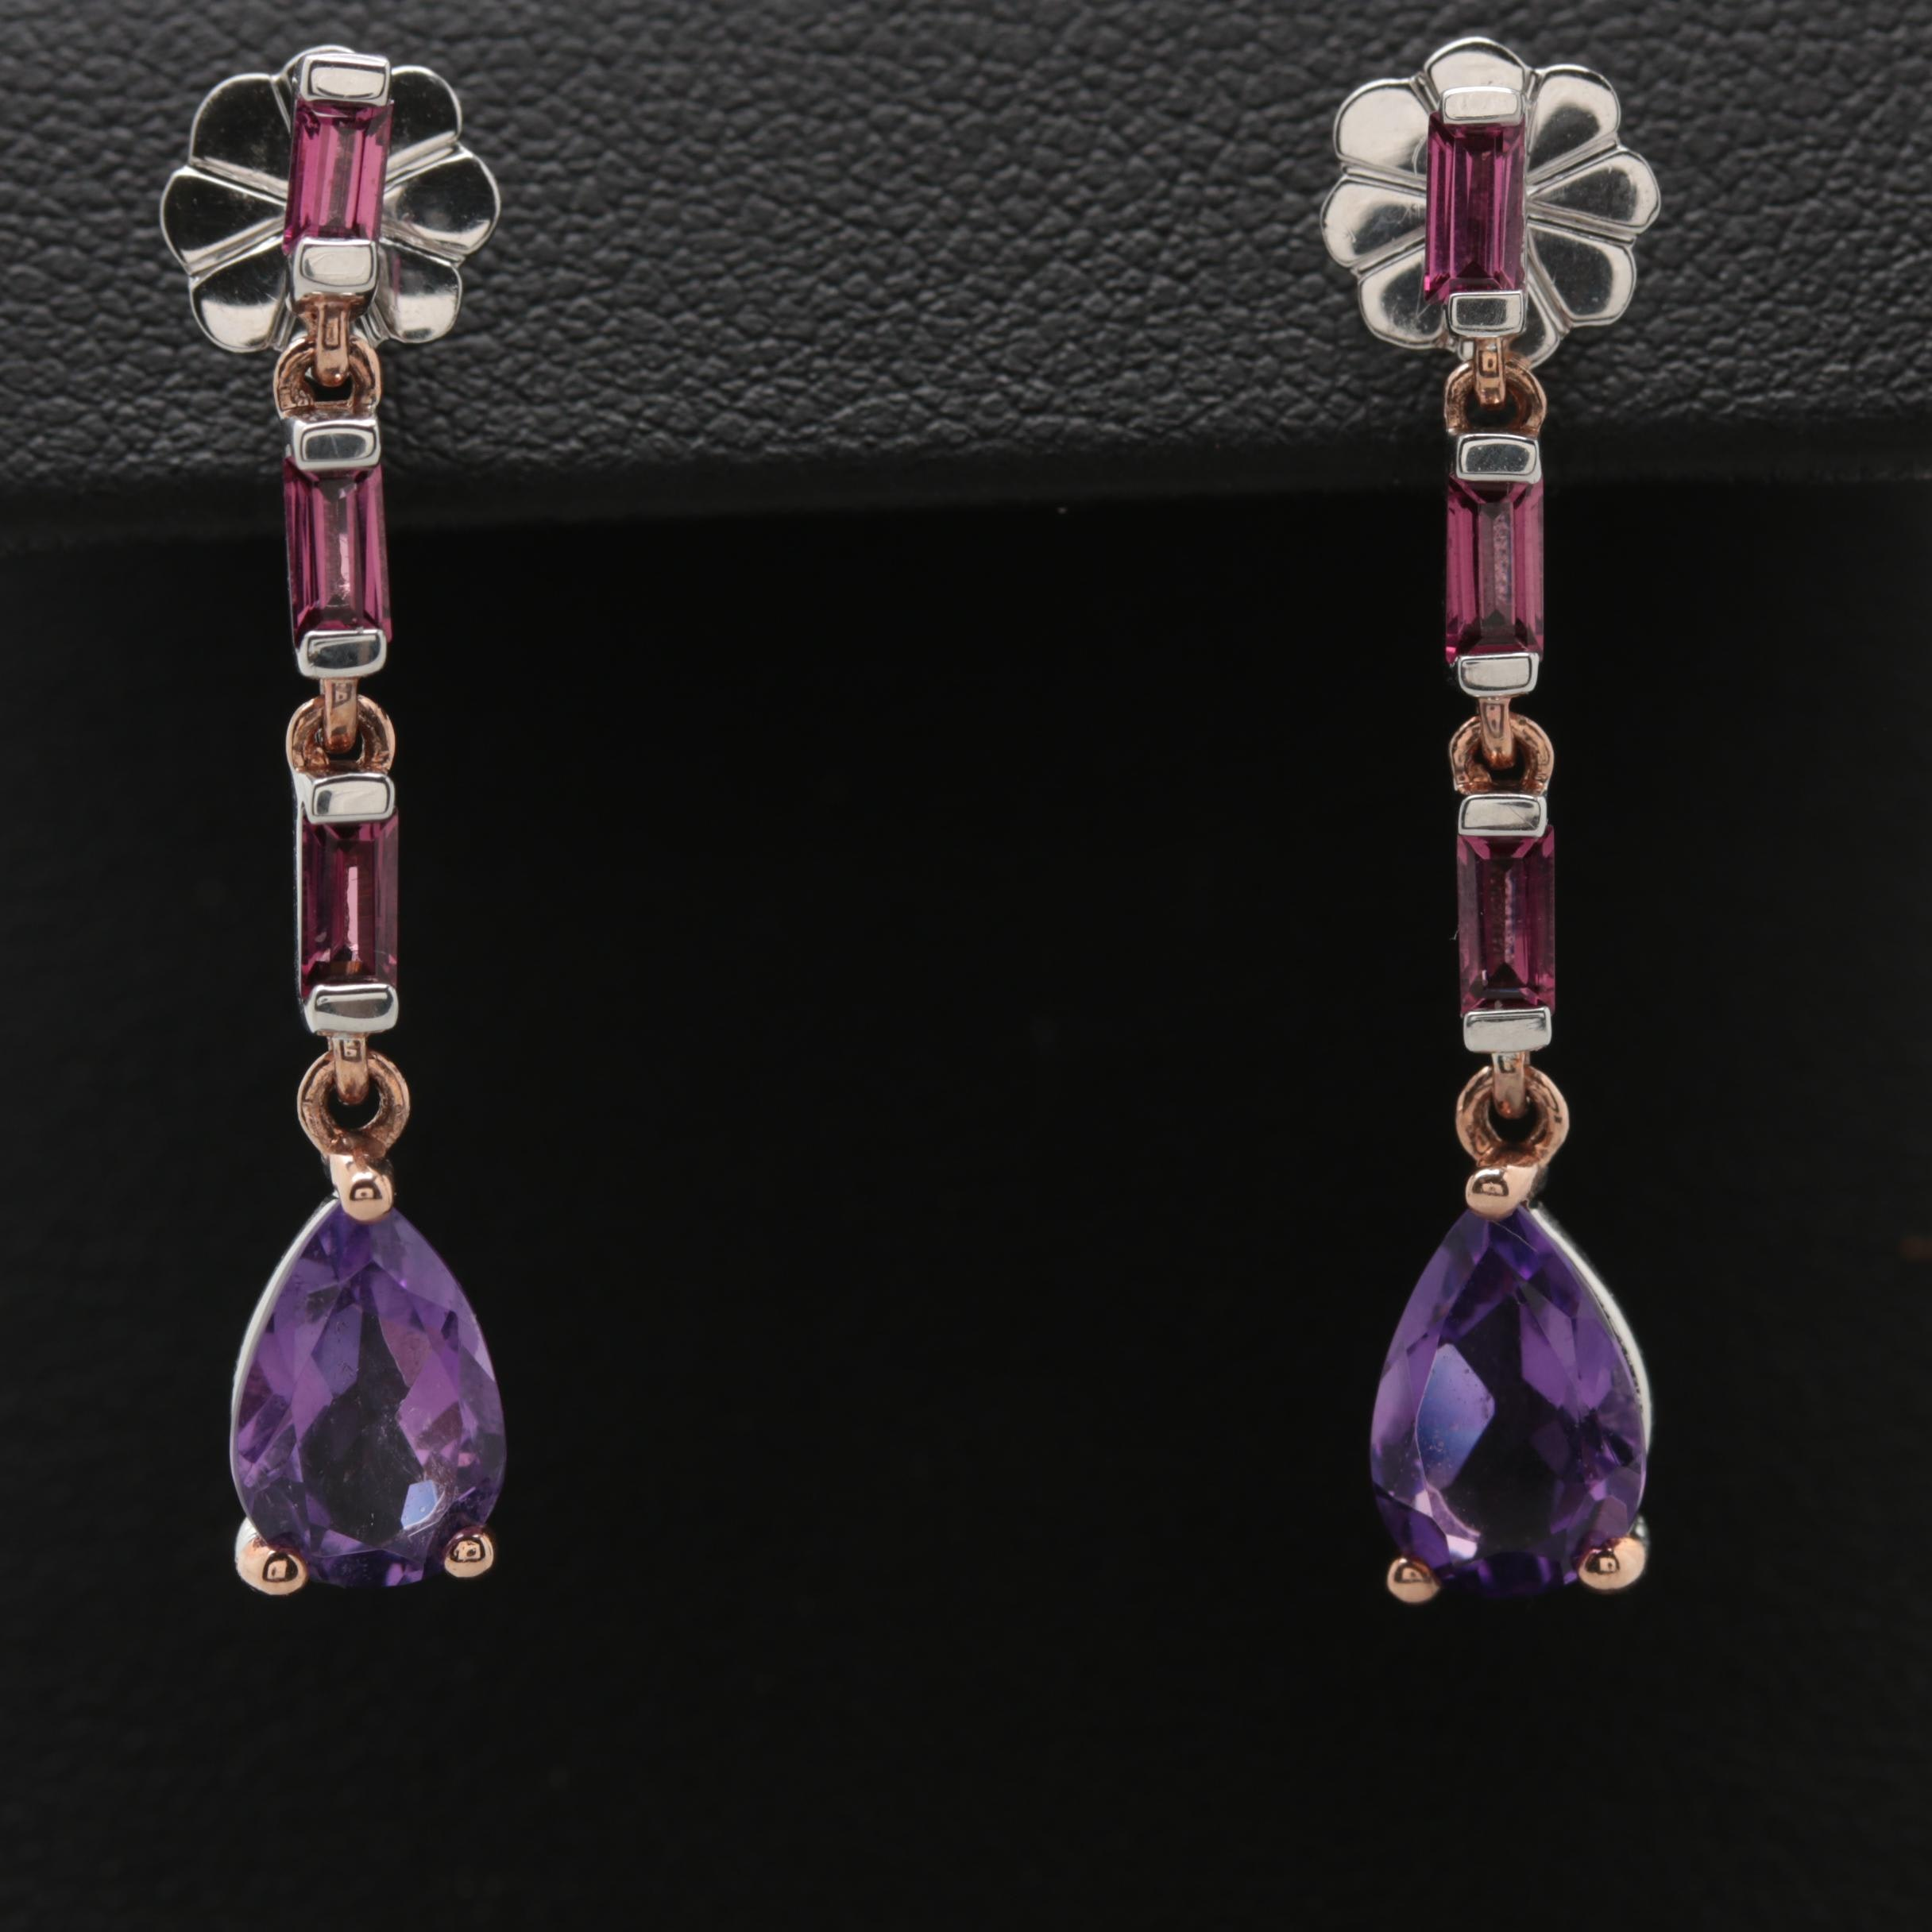 Robert Manse Sterling Rhodolite Garnet and Amethyst Earrings with Rose Gold Wash